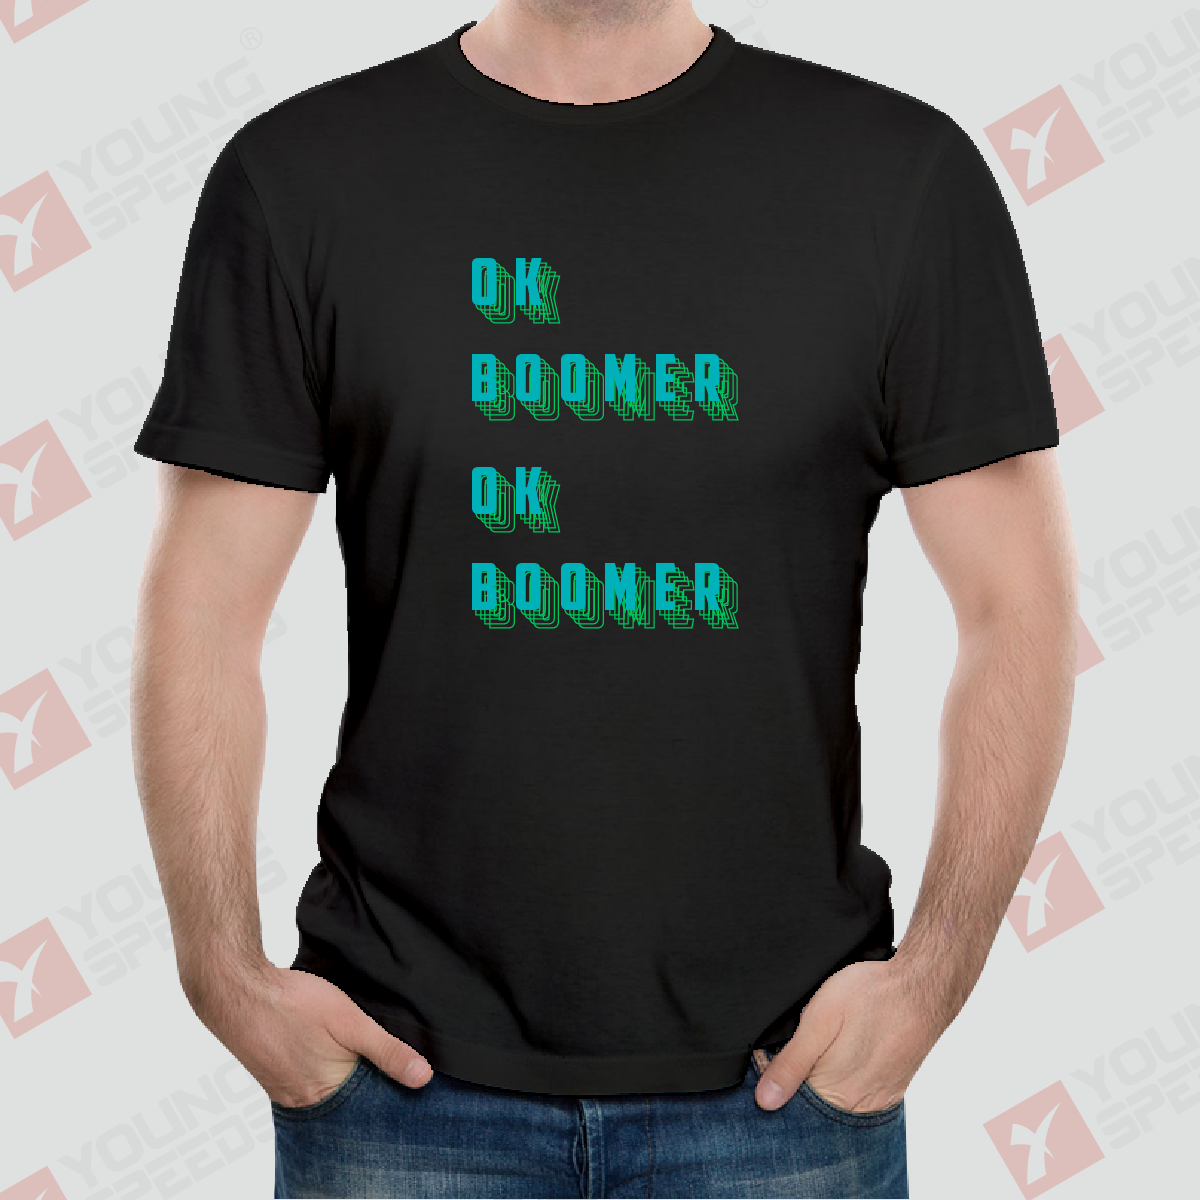 Original 3D Model Letters OK BOOMER Unisex T-Shirts Made in USA - YoungSpeeds